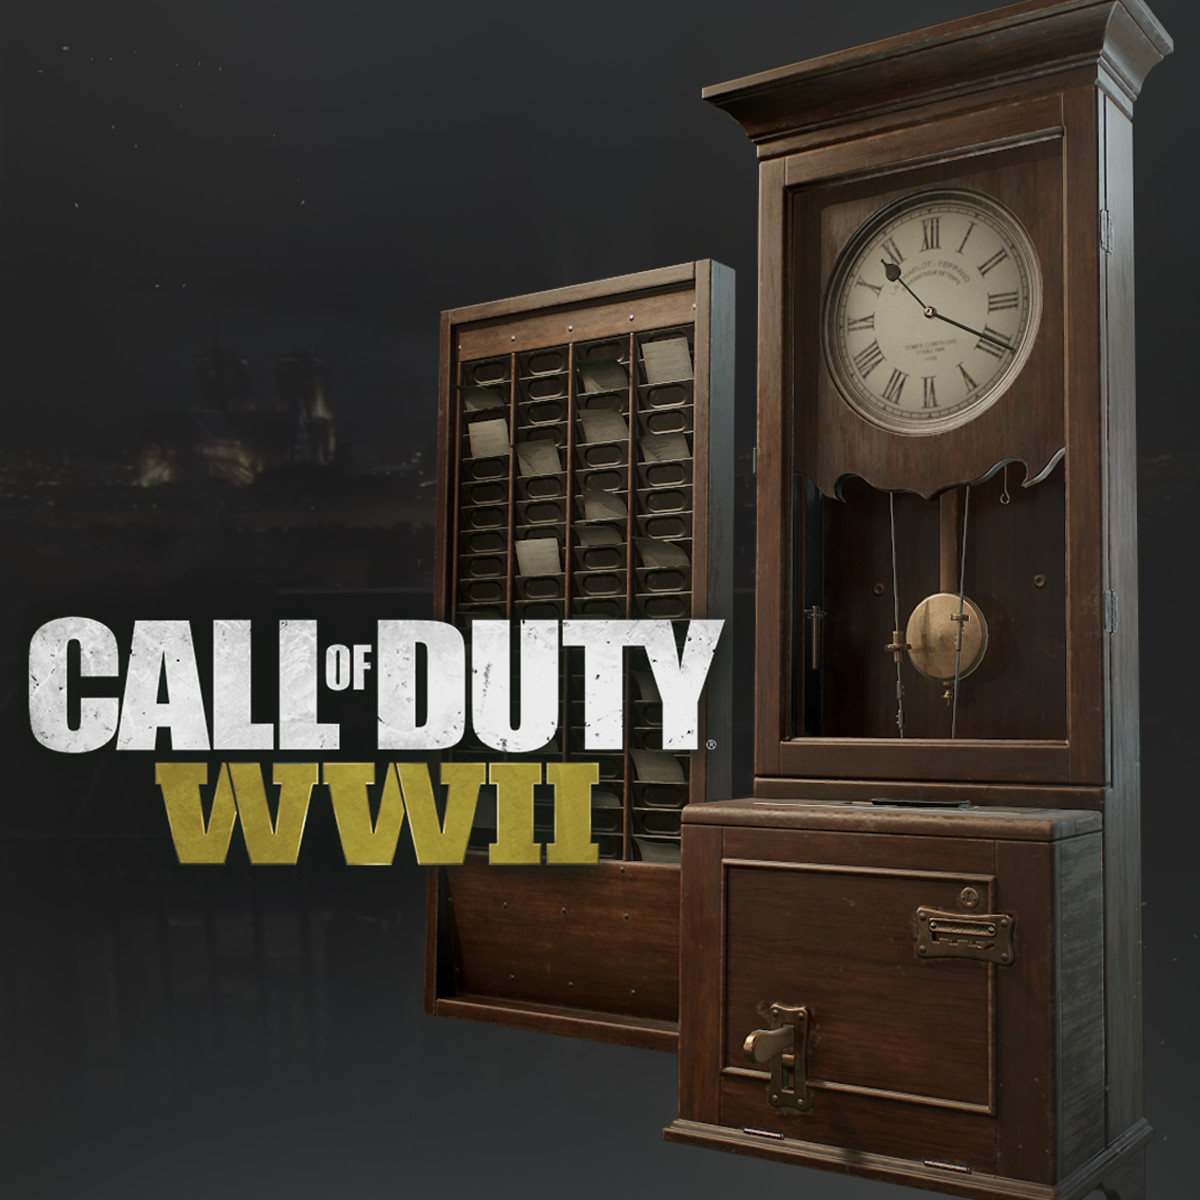 Call of Duty: WWII - Props